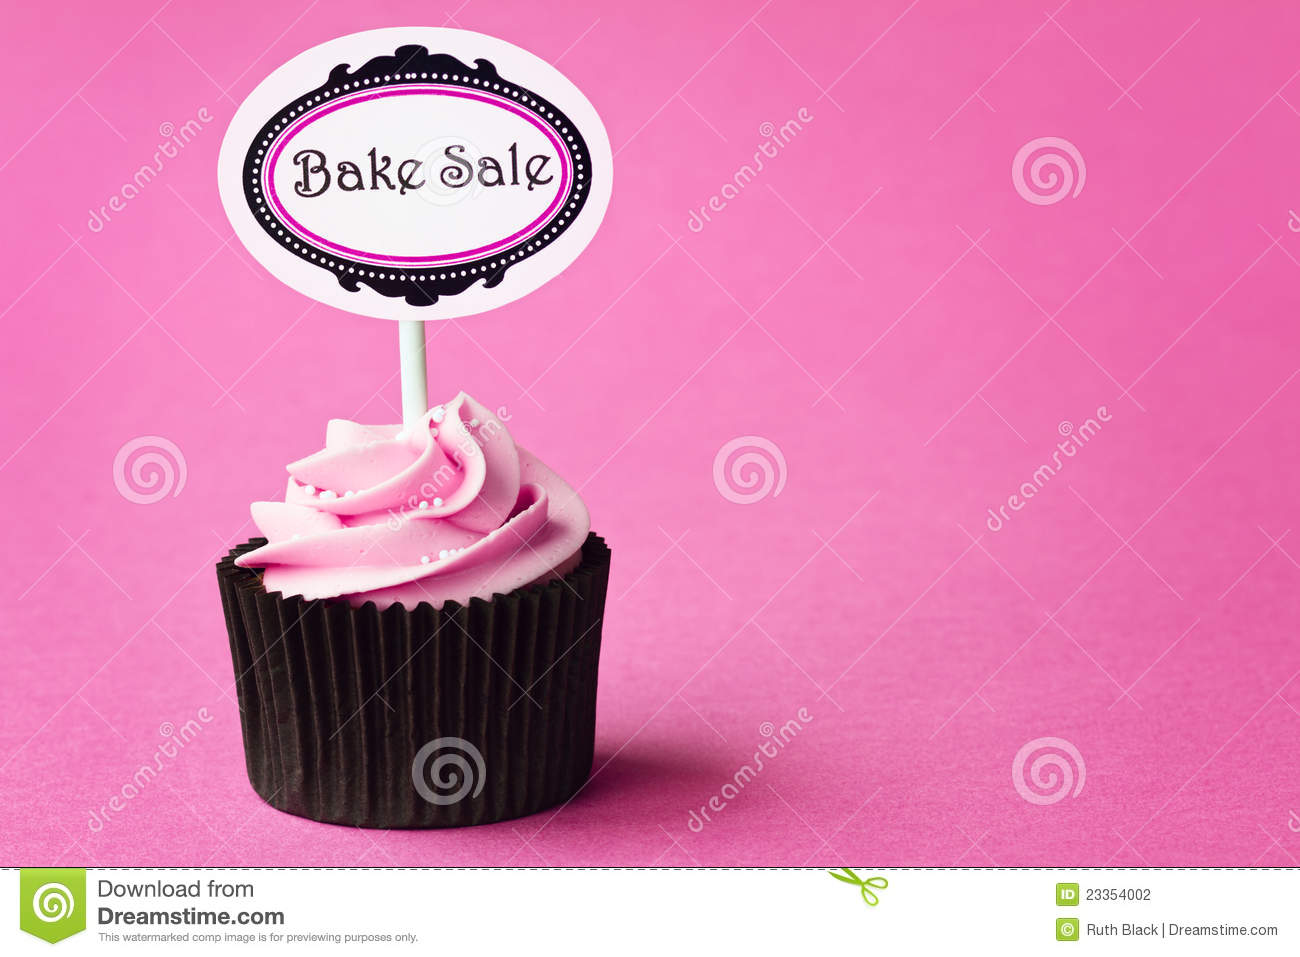 stock photos images pictures 674 013 images bake cupcake stock photography